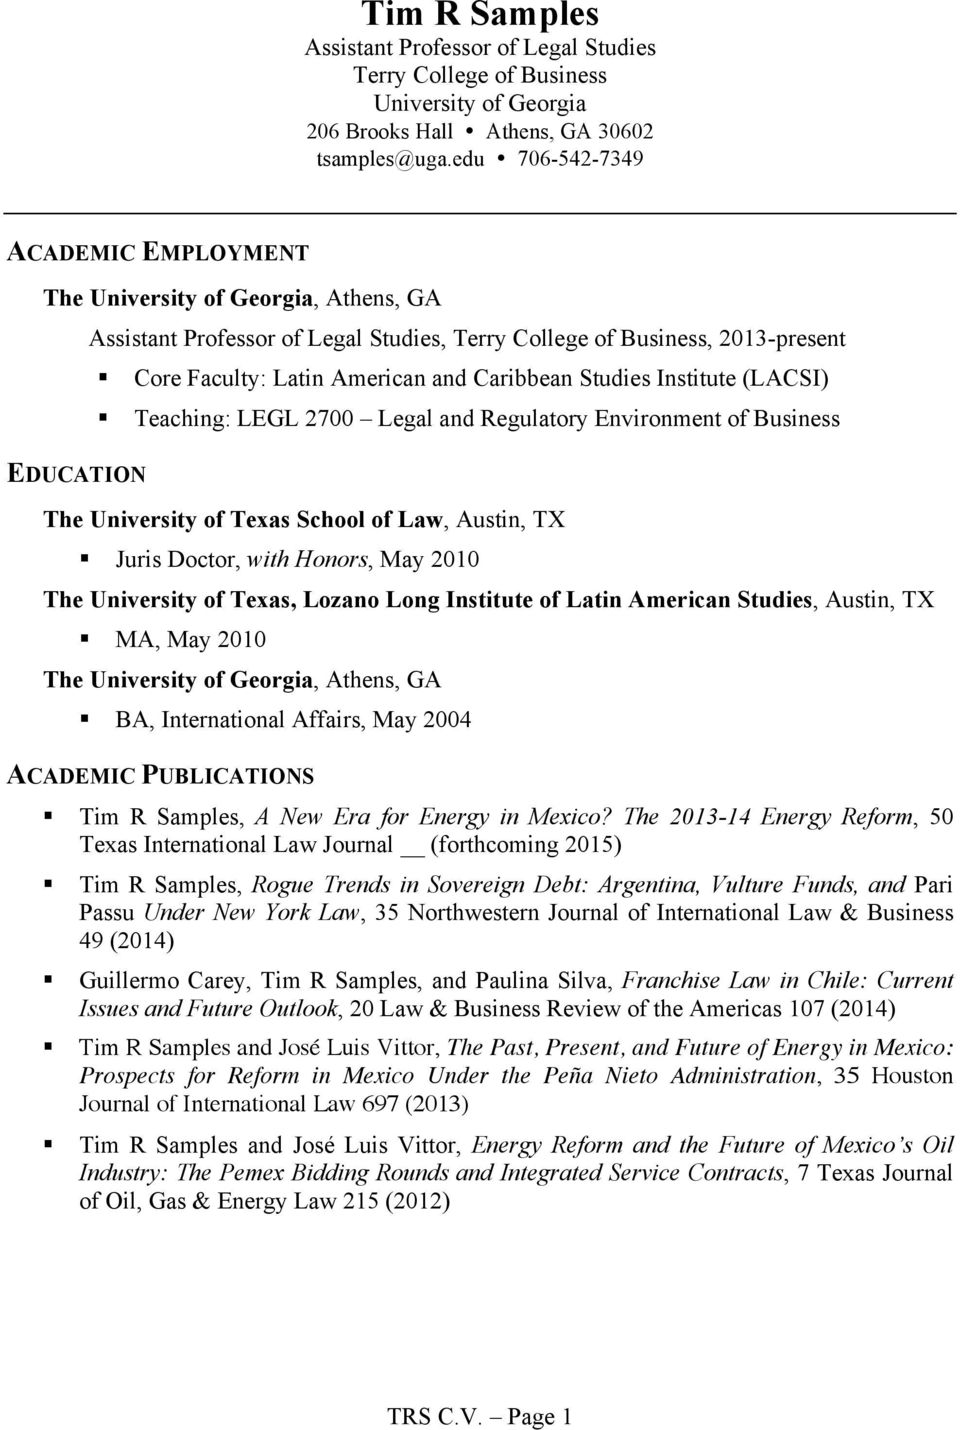 Cre Faculty: Latin American and Caribbean Studies Institute (LACSI)! Teaching: LEGL 2700 Legal and Regulatry Envirnment f Business The University f Texas Schl f Law, Austin, TX!